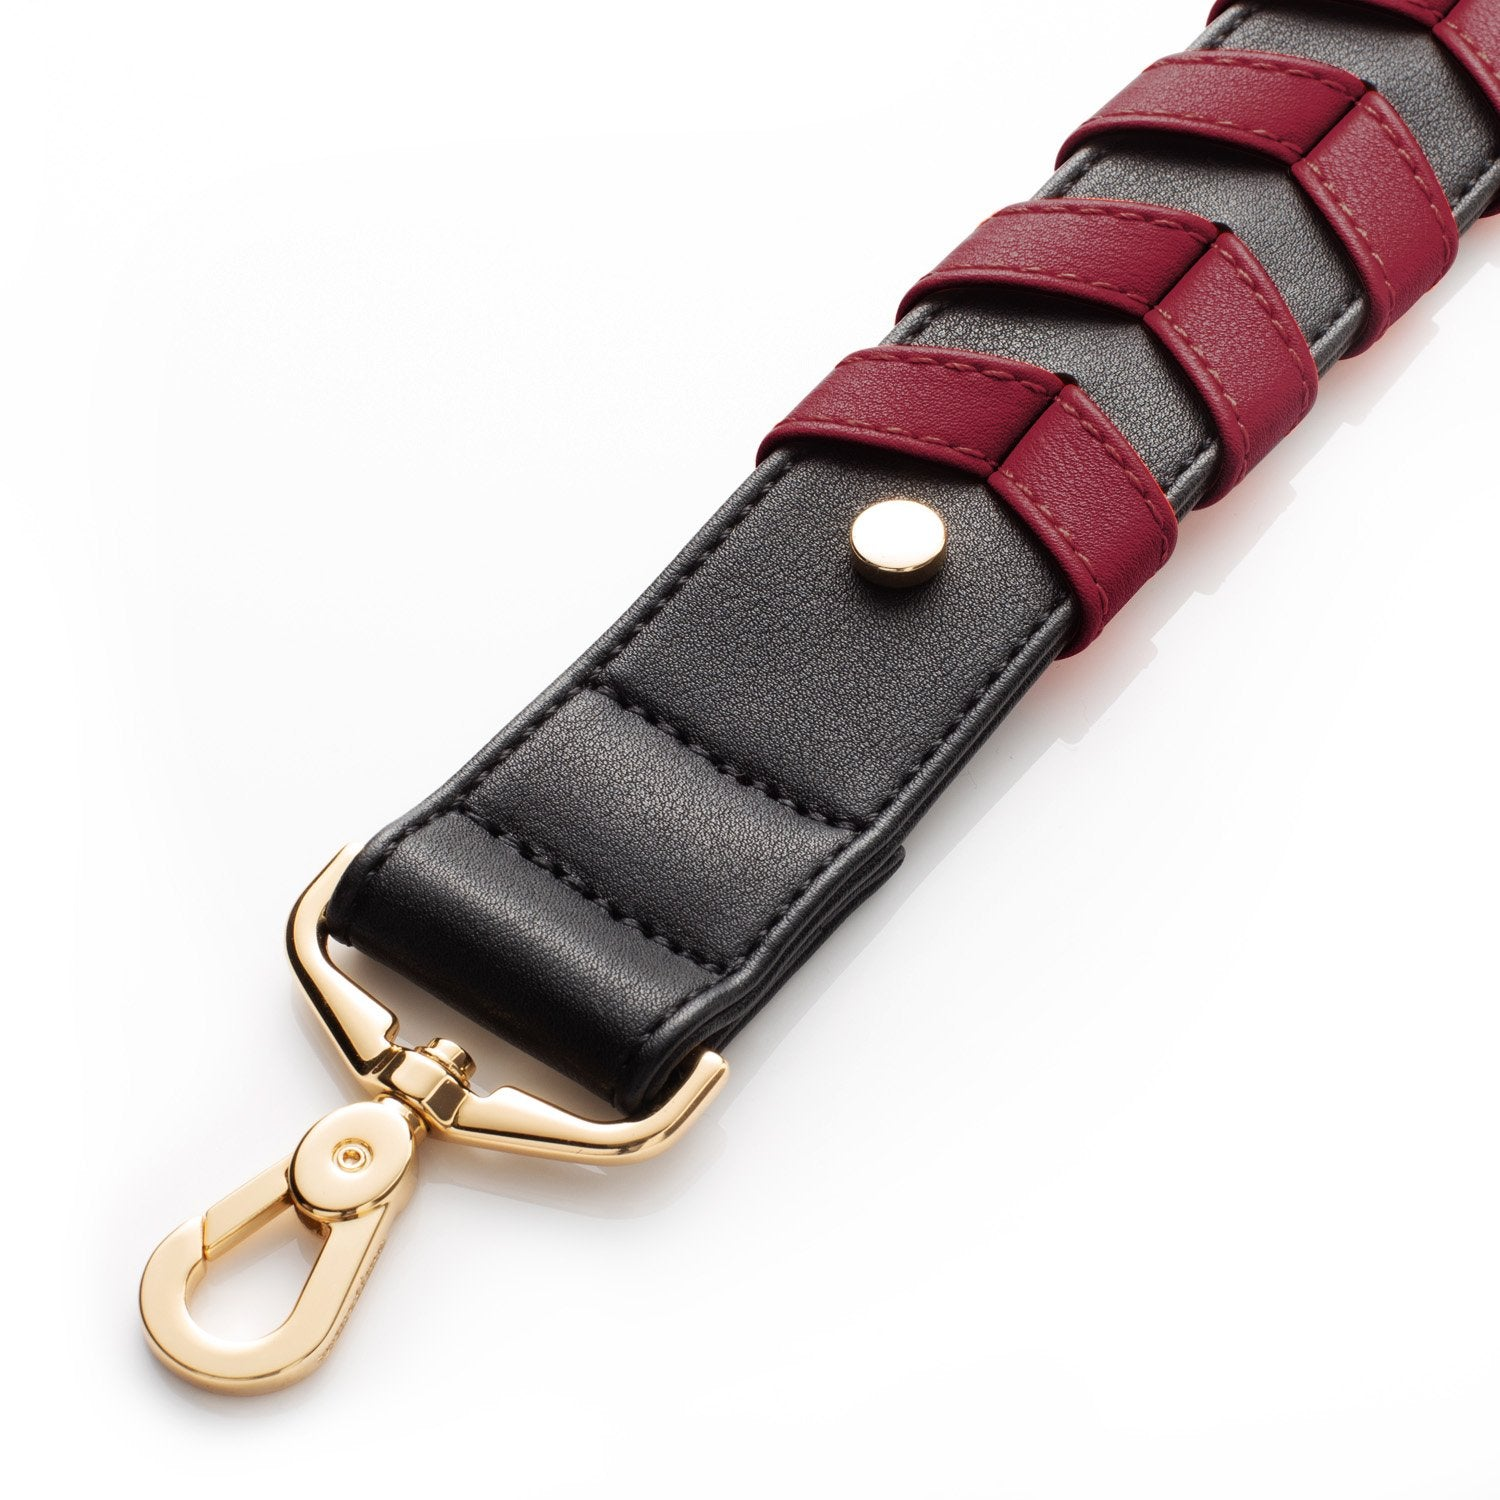 BRAIDED STRAP - MAROON